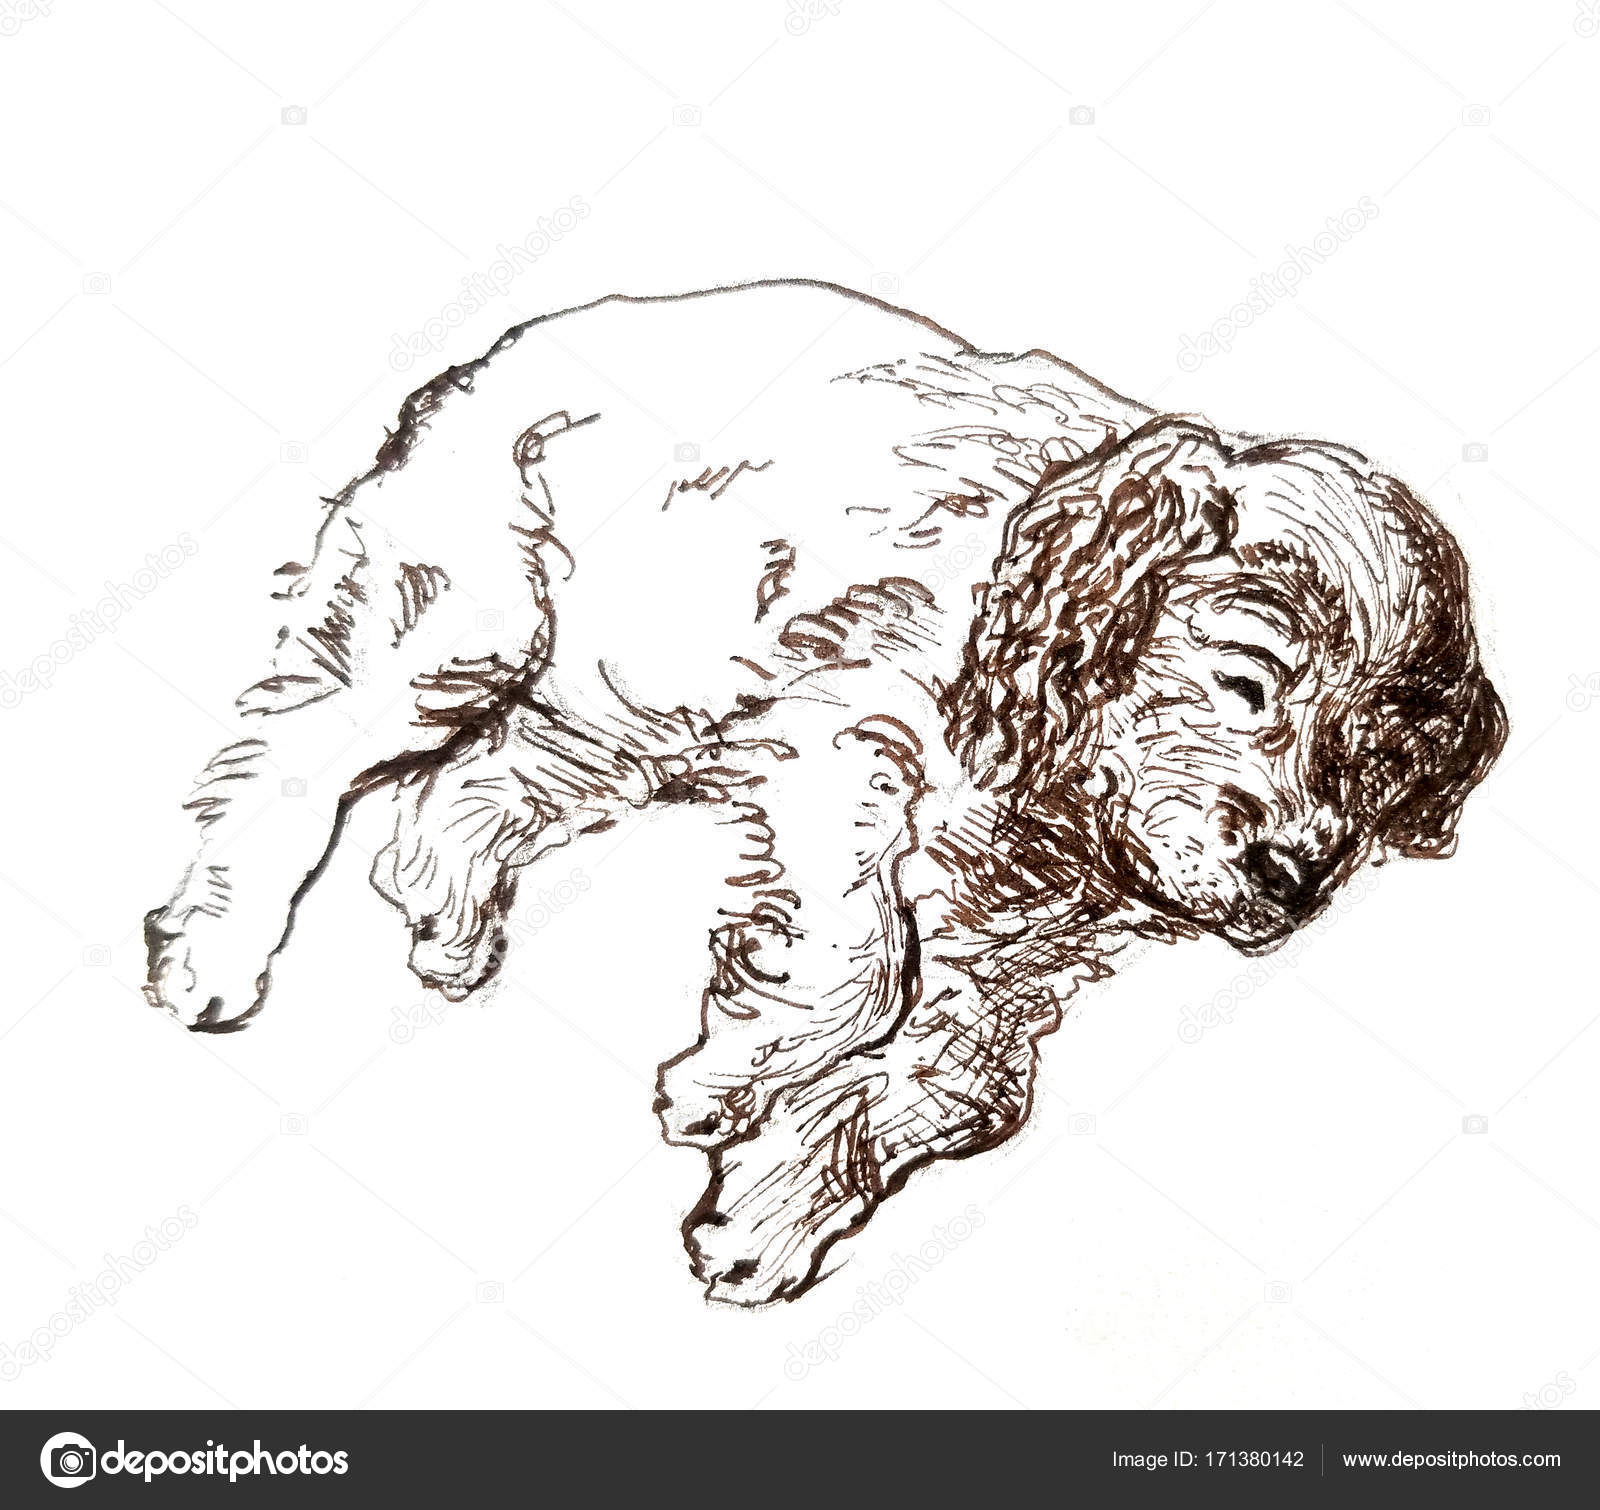 Cocker Spaniel Pencil Drawing Ink Drawing Of Spaniel Puppy Stock Vector C Bychovsky Gmail Com 171380142